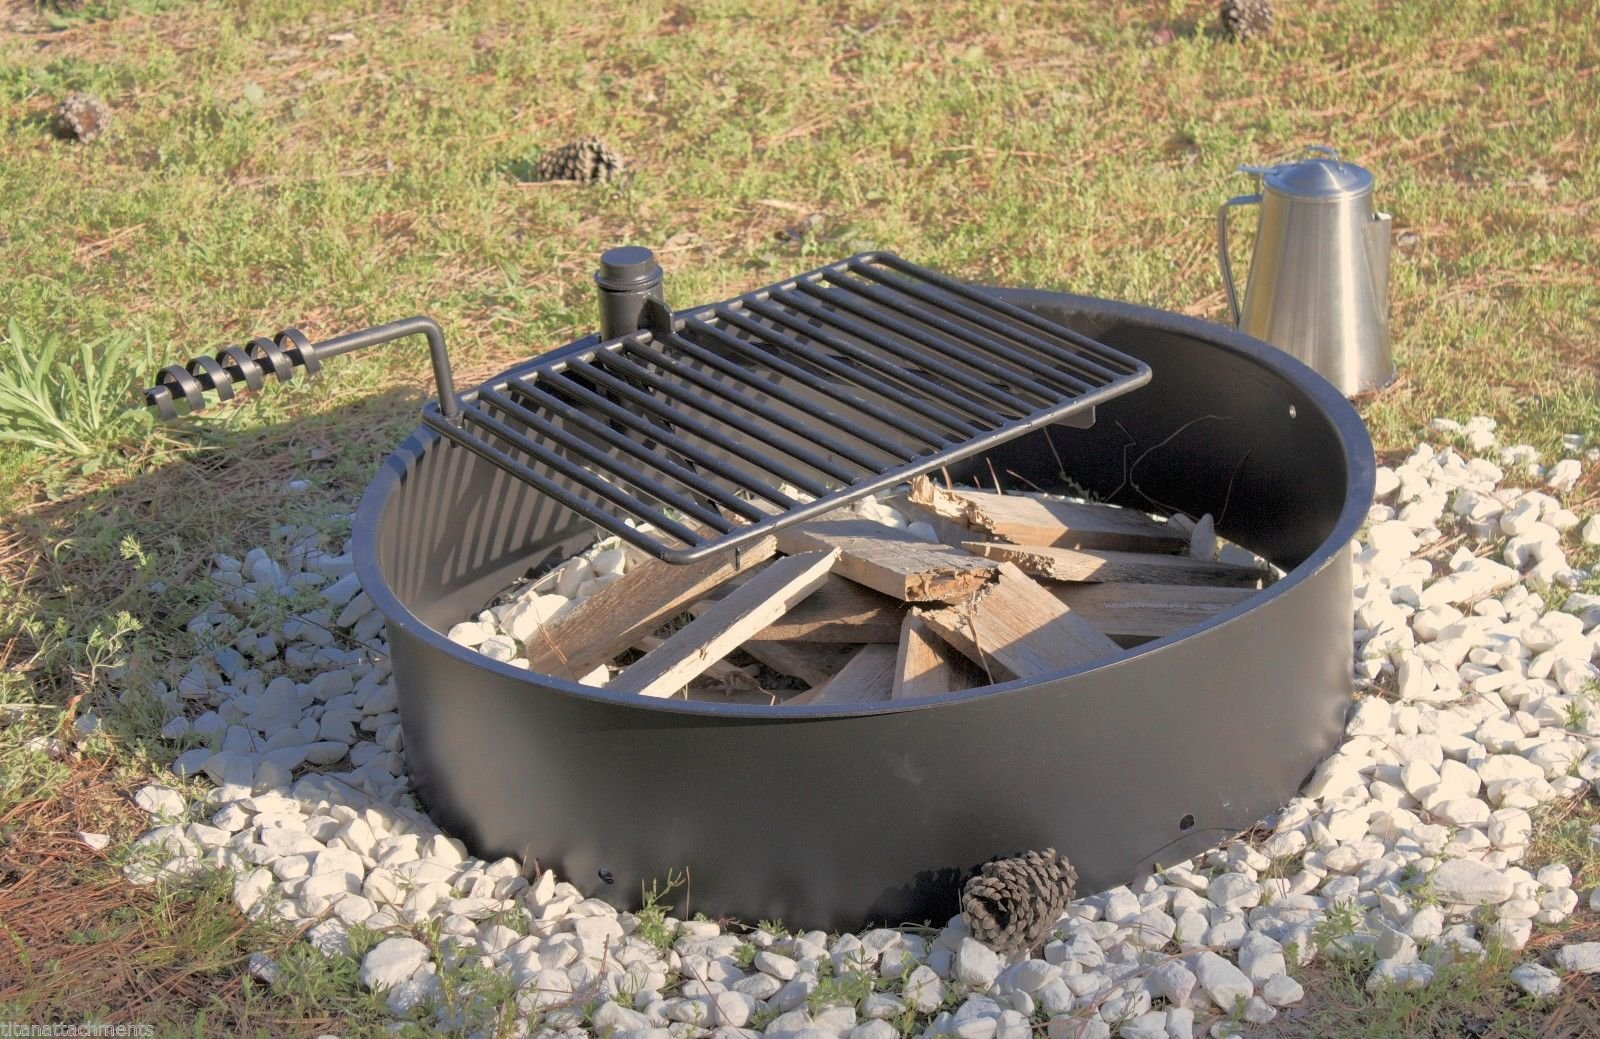 36'' Steel Fire Ring with Cooking Grate Campfire Pit Park Grill BBQ Camping Trail by Titan Outdoors (Image #7)